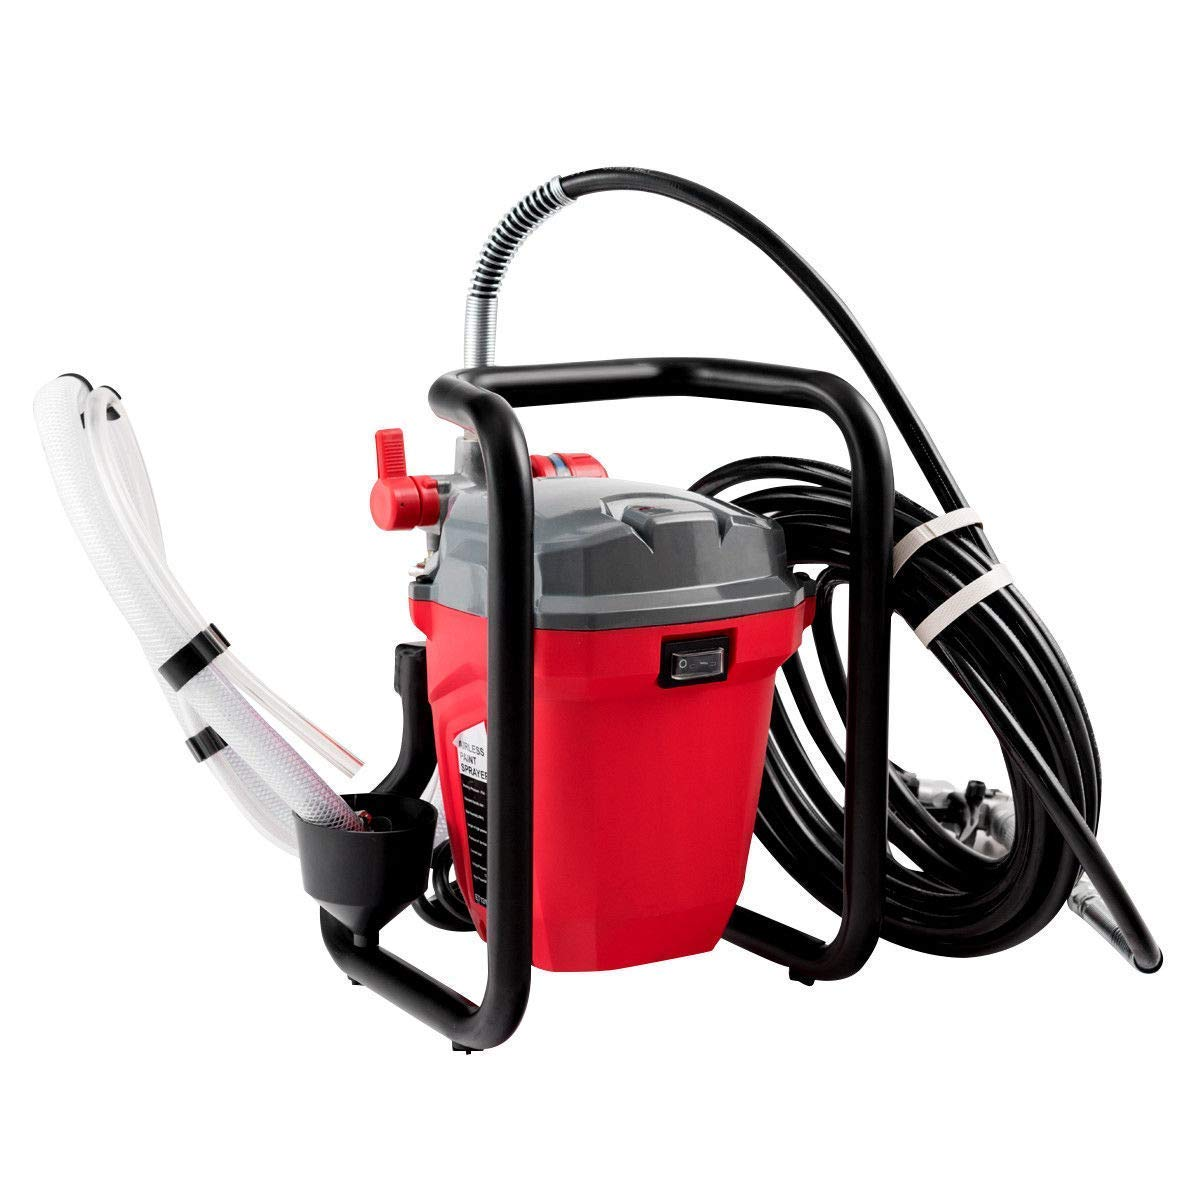 Goplus Airless Paint Sprayer Image